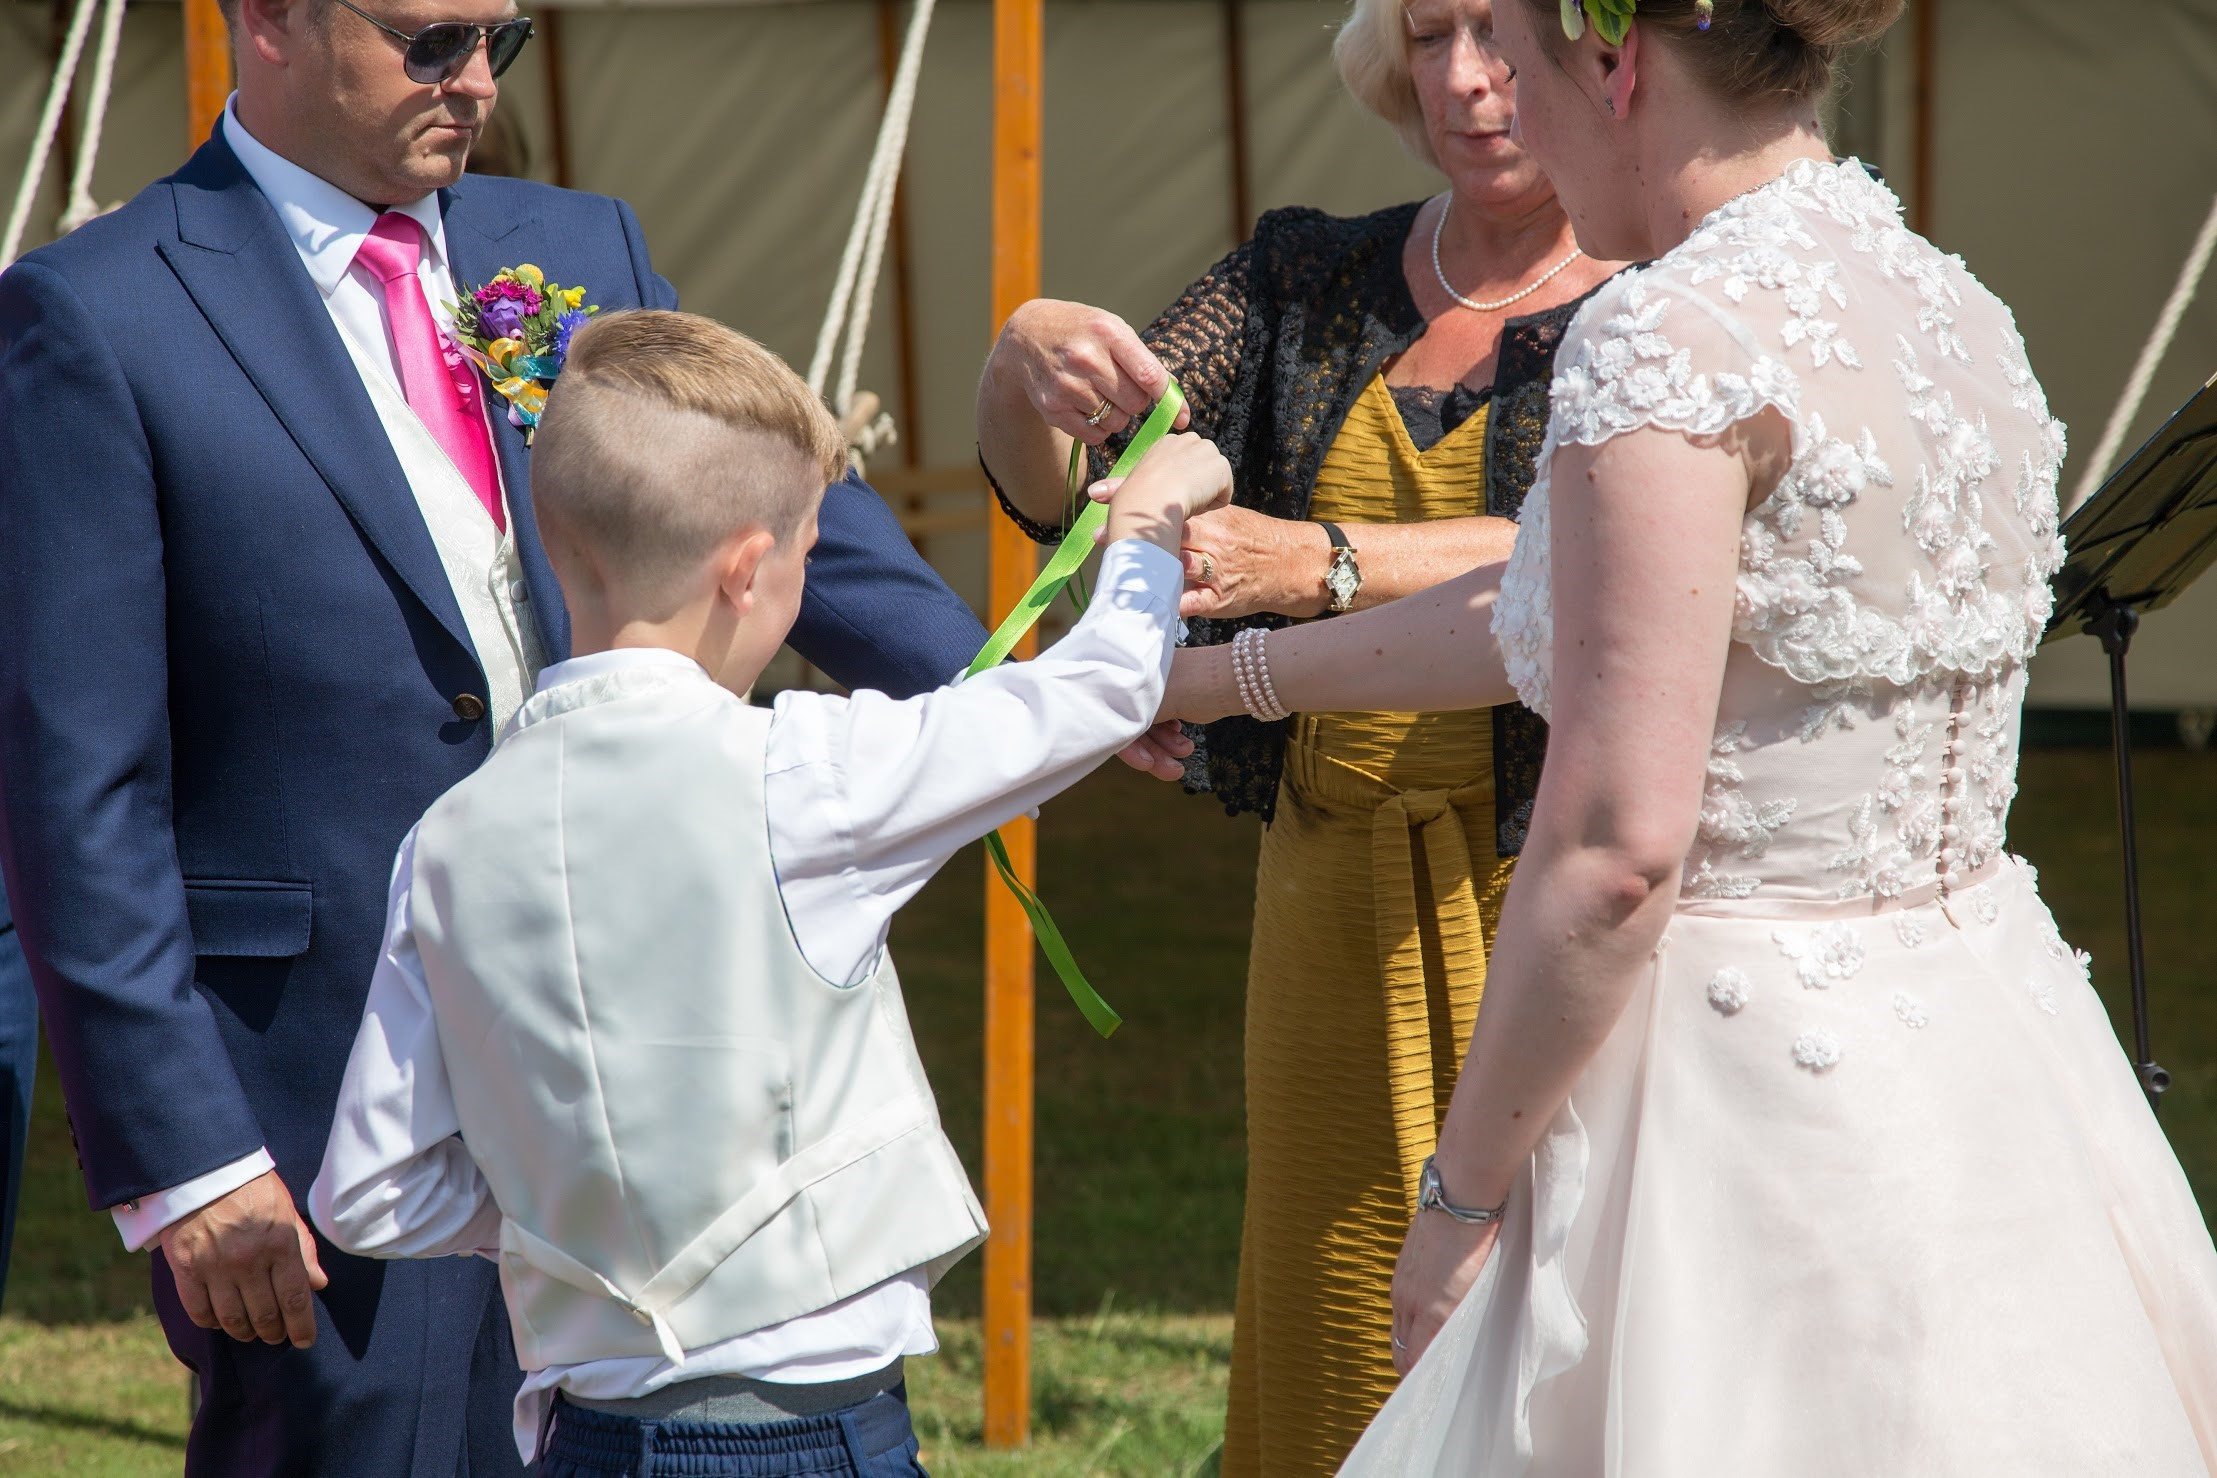 Handfasting Ceremony at a festival themed wedding